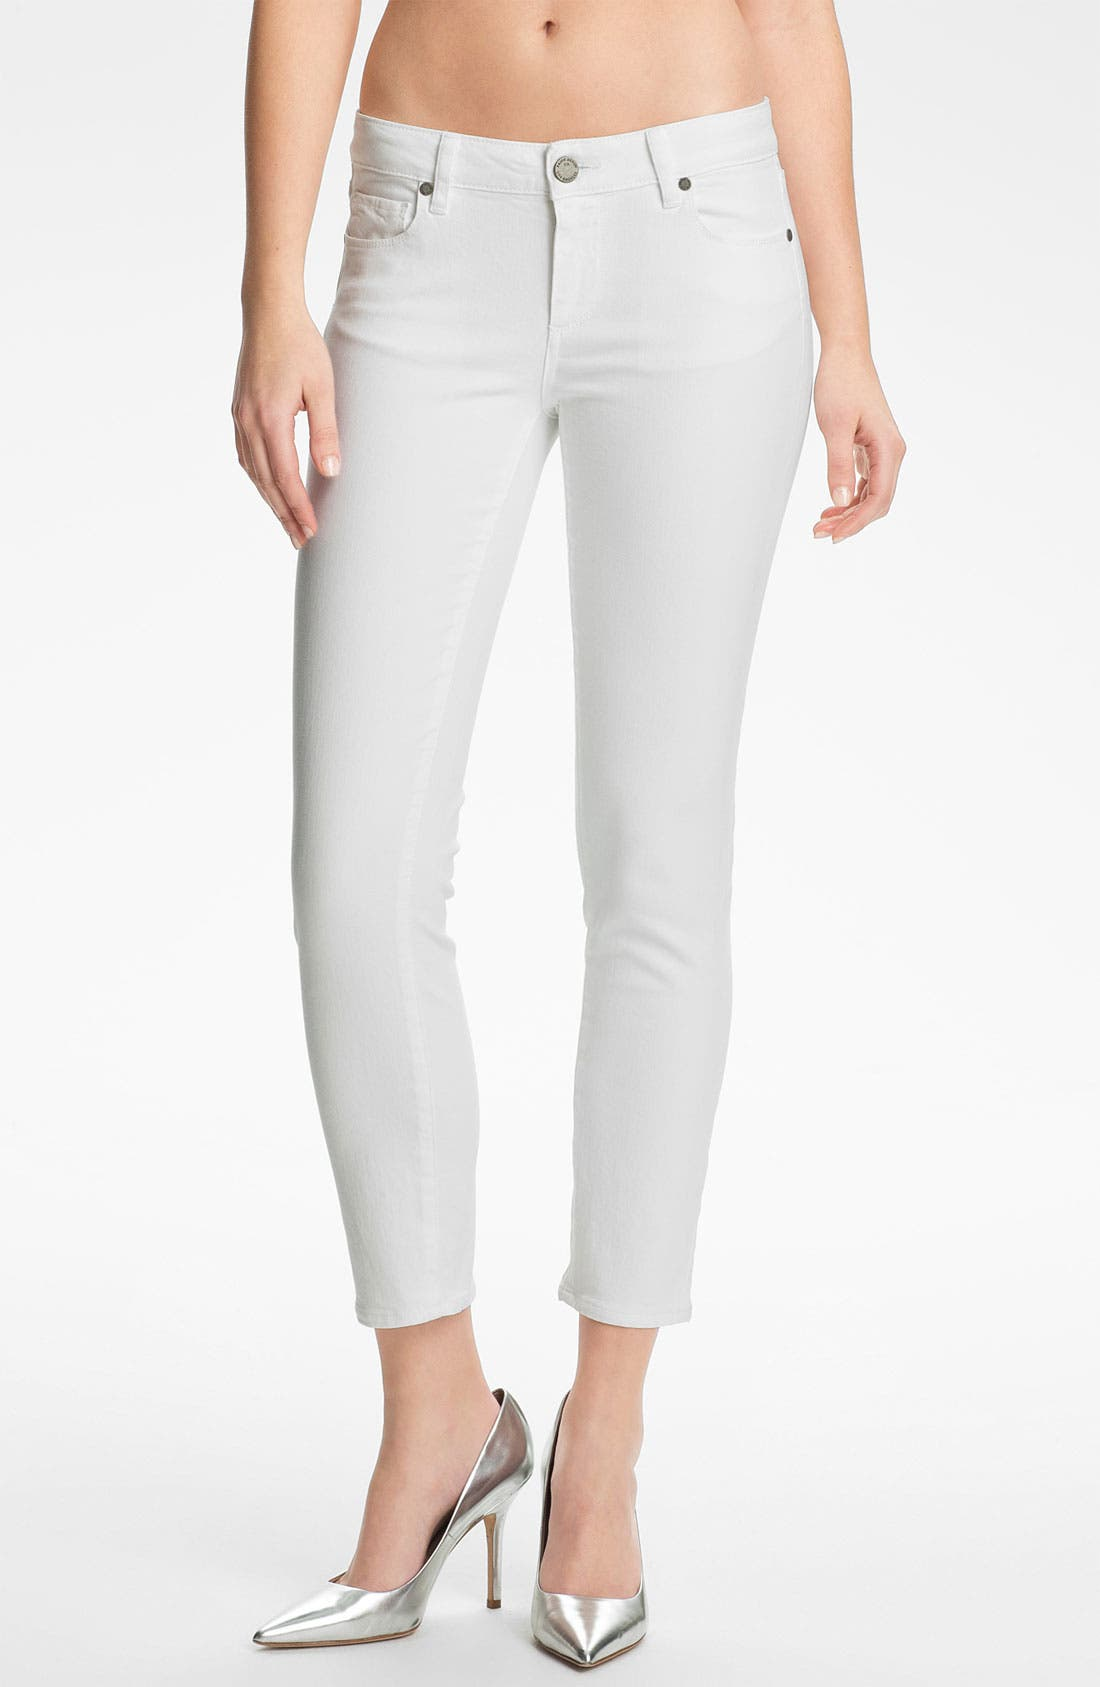 Alternate Image 1 Selected - Paige Denim 'Kylie' Crop Skinny Jeans (Optic White)